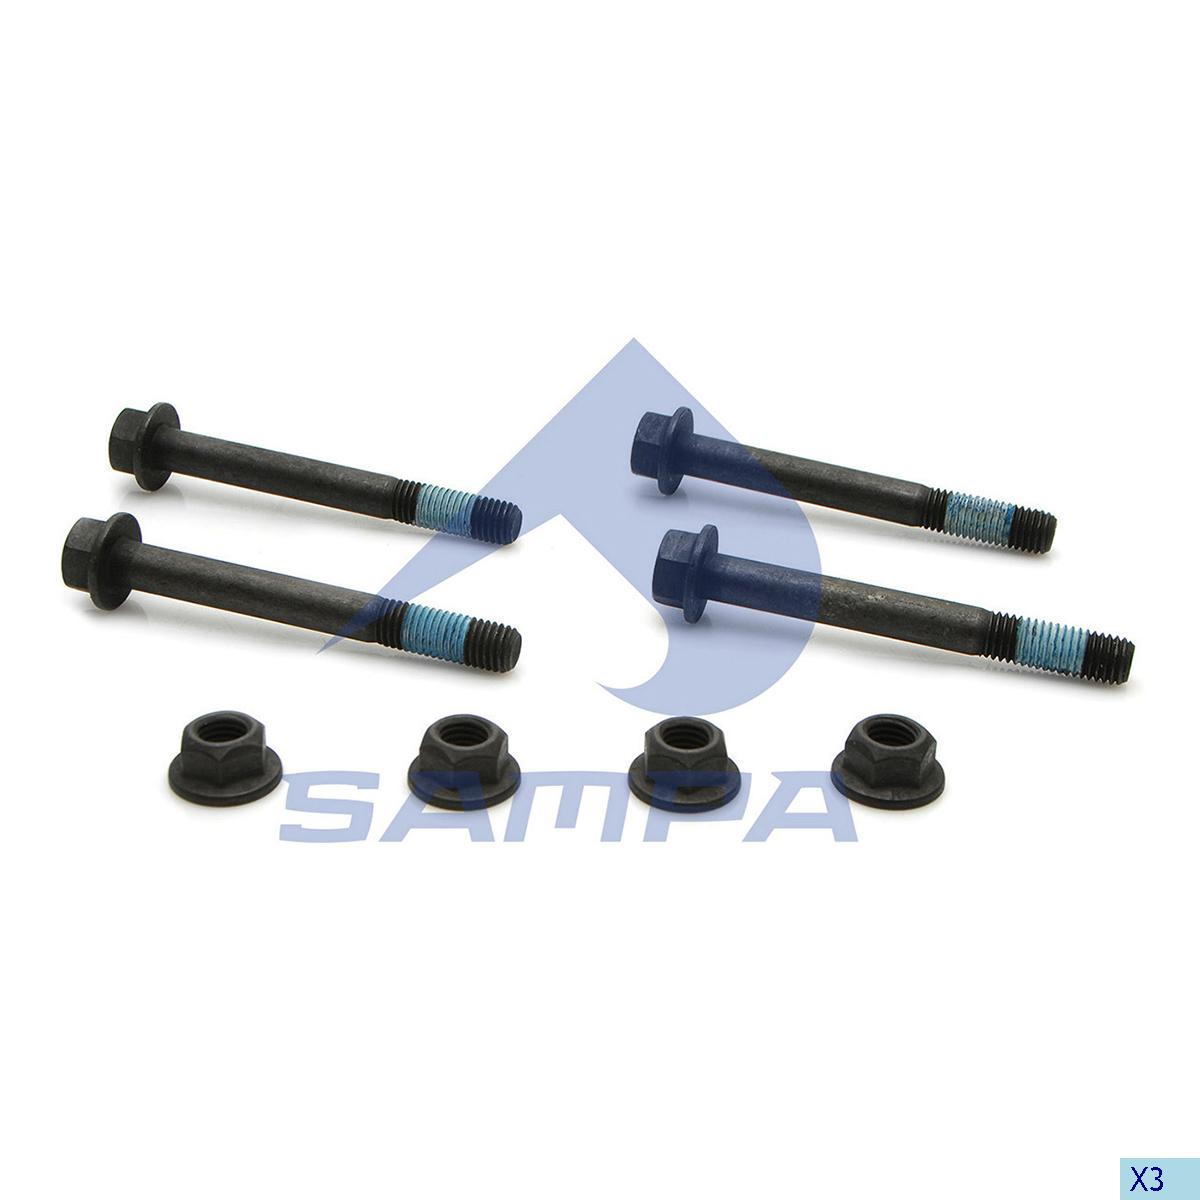 Repair Kit, Axle Rod, Chalmers, Suspension